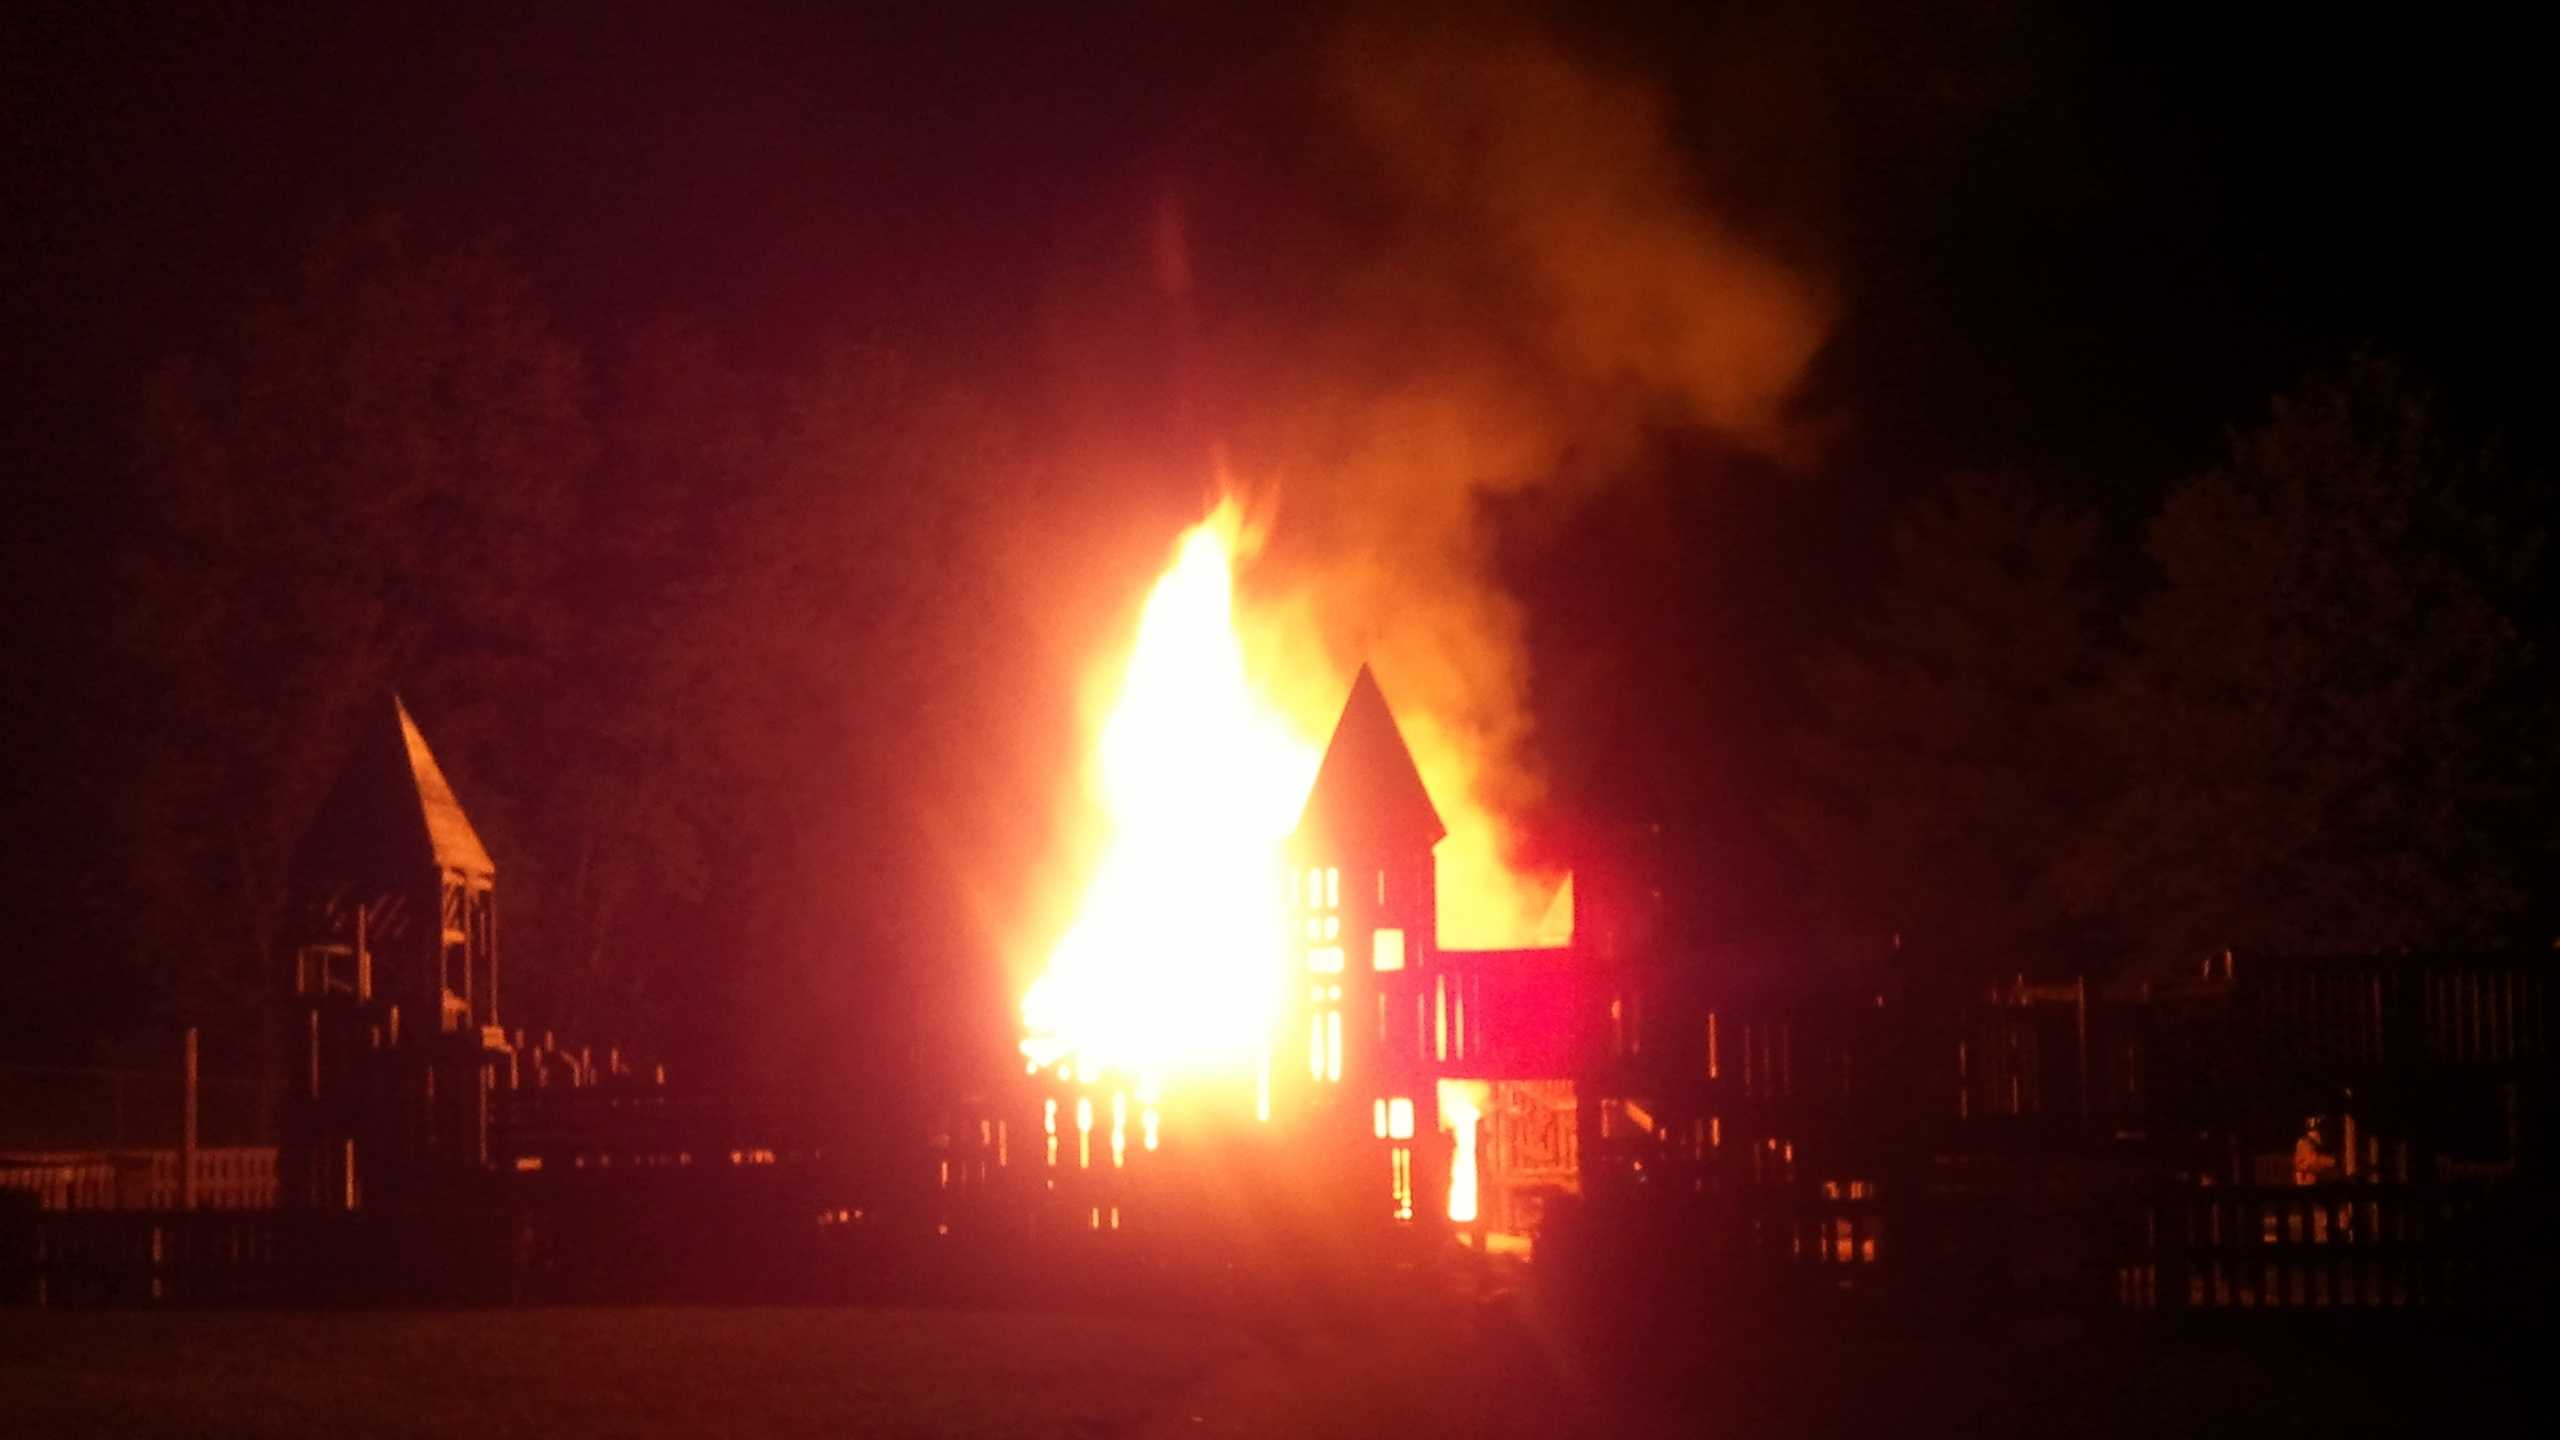 A News 8 viewer shared this photo of Friday's fire.